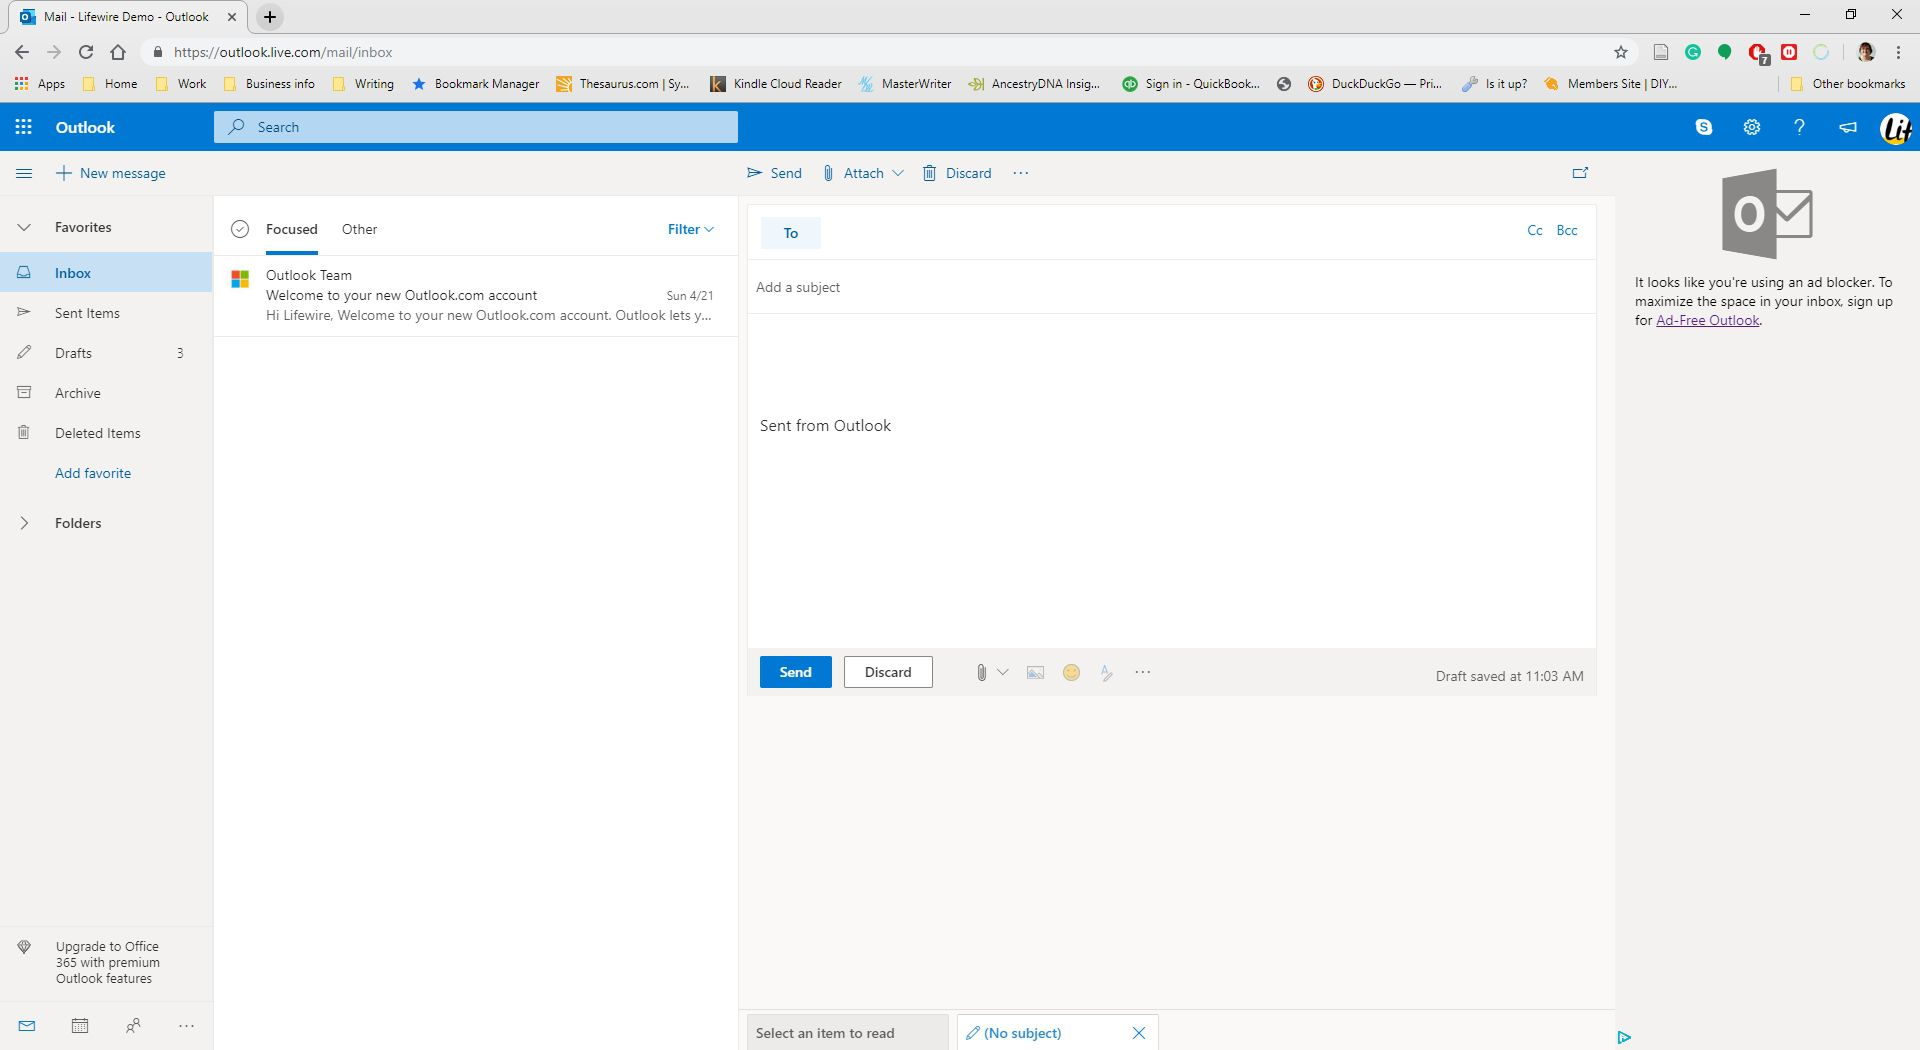 The formatting bar has disappeared by switching to plain text in Outlook.com.